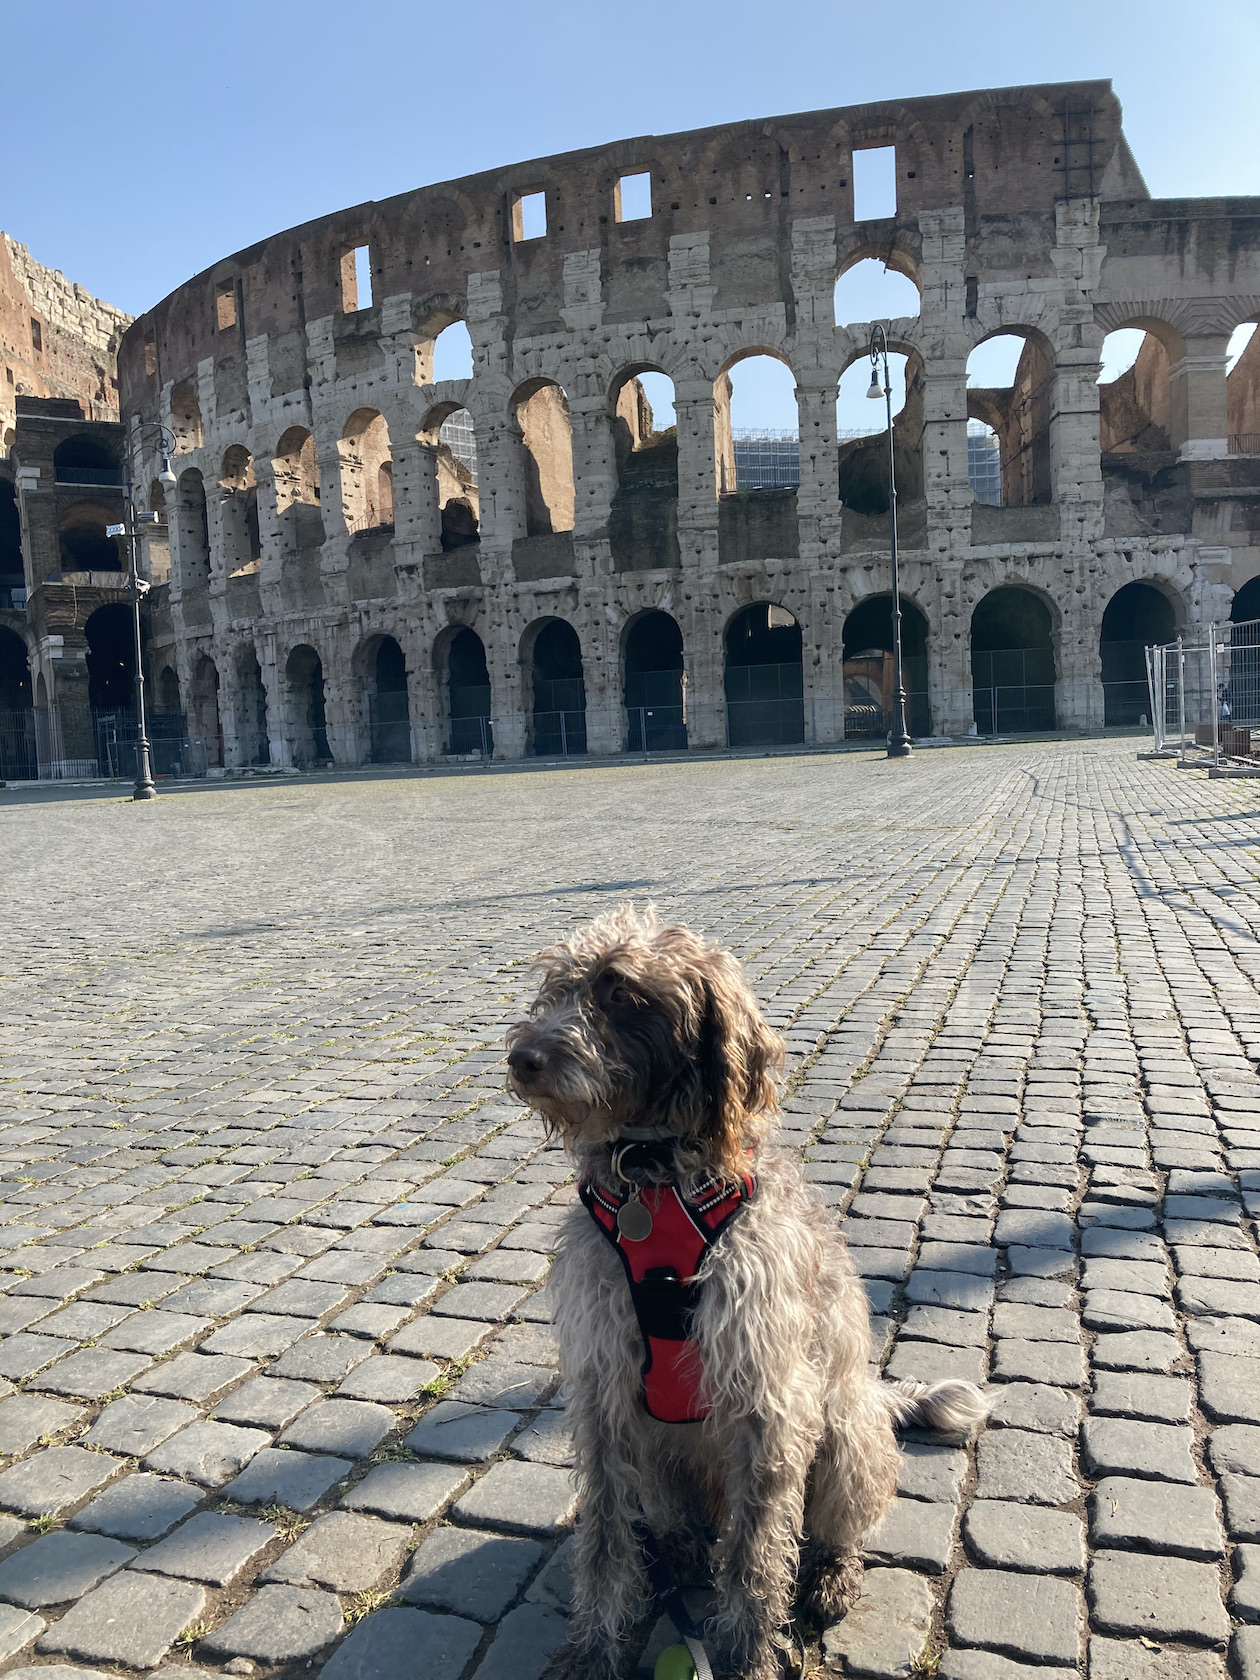 One of Rome's most iconic sights.... and the Colosseum